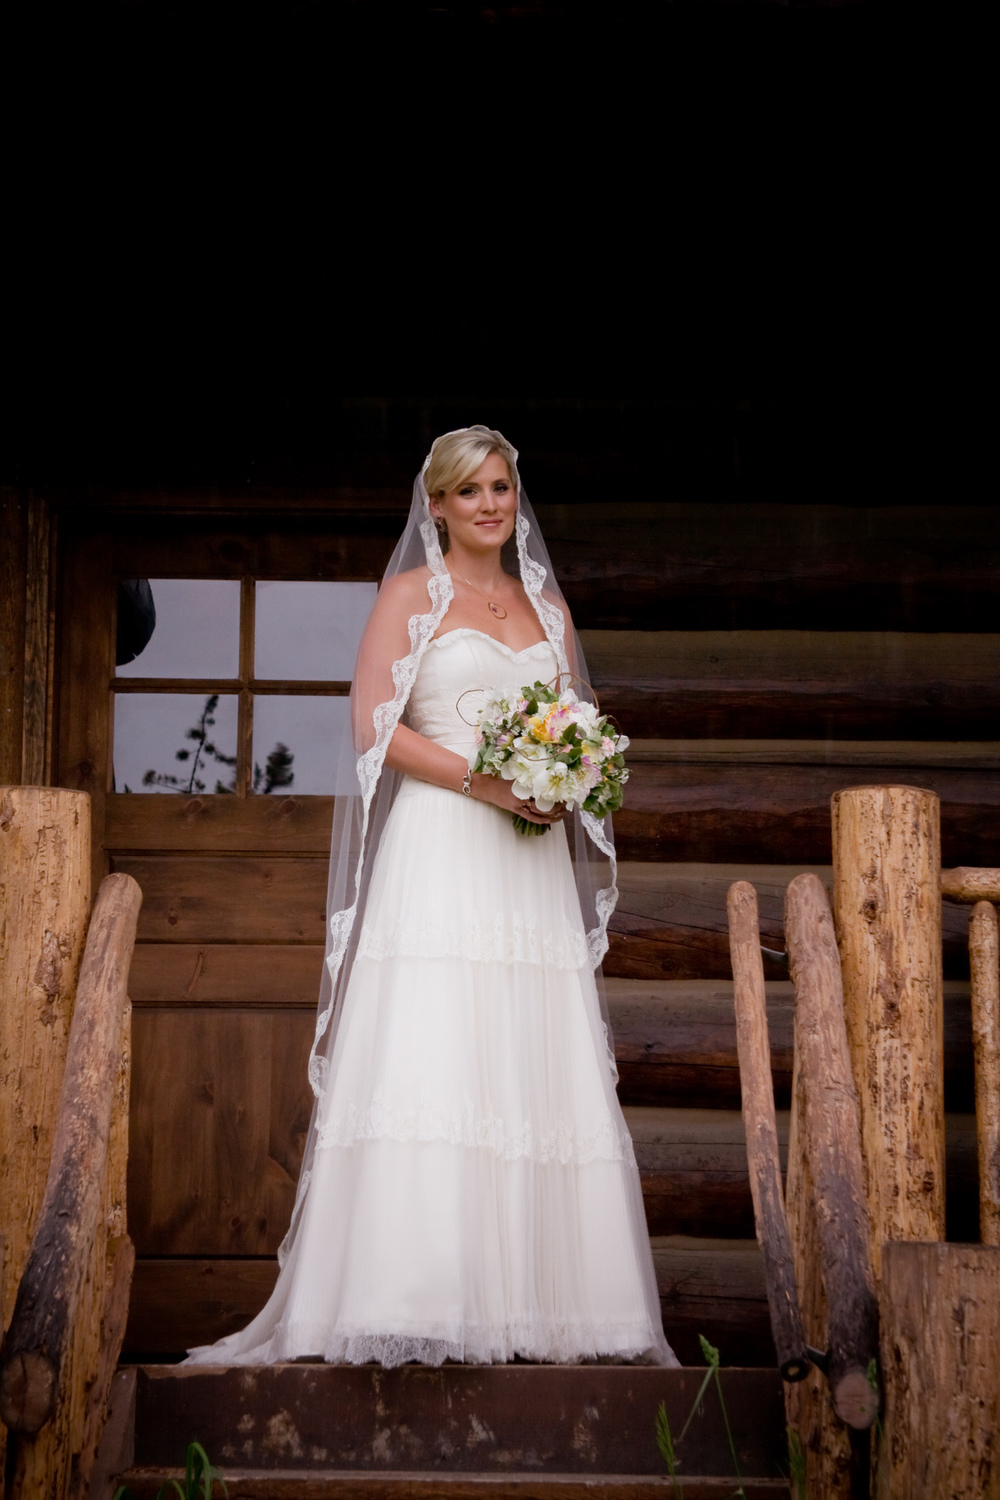 Devils_Thumb_Ranch_Wedding_010.JPG